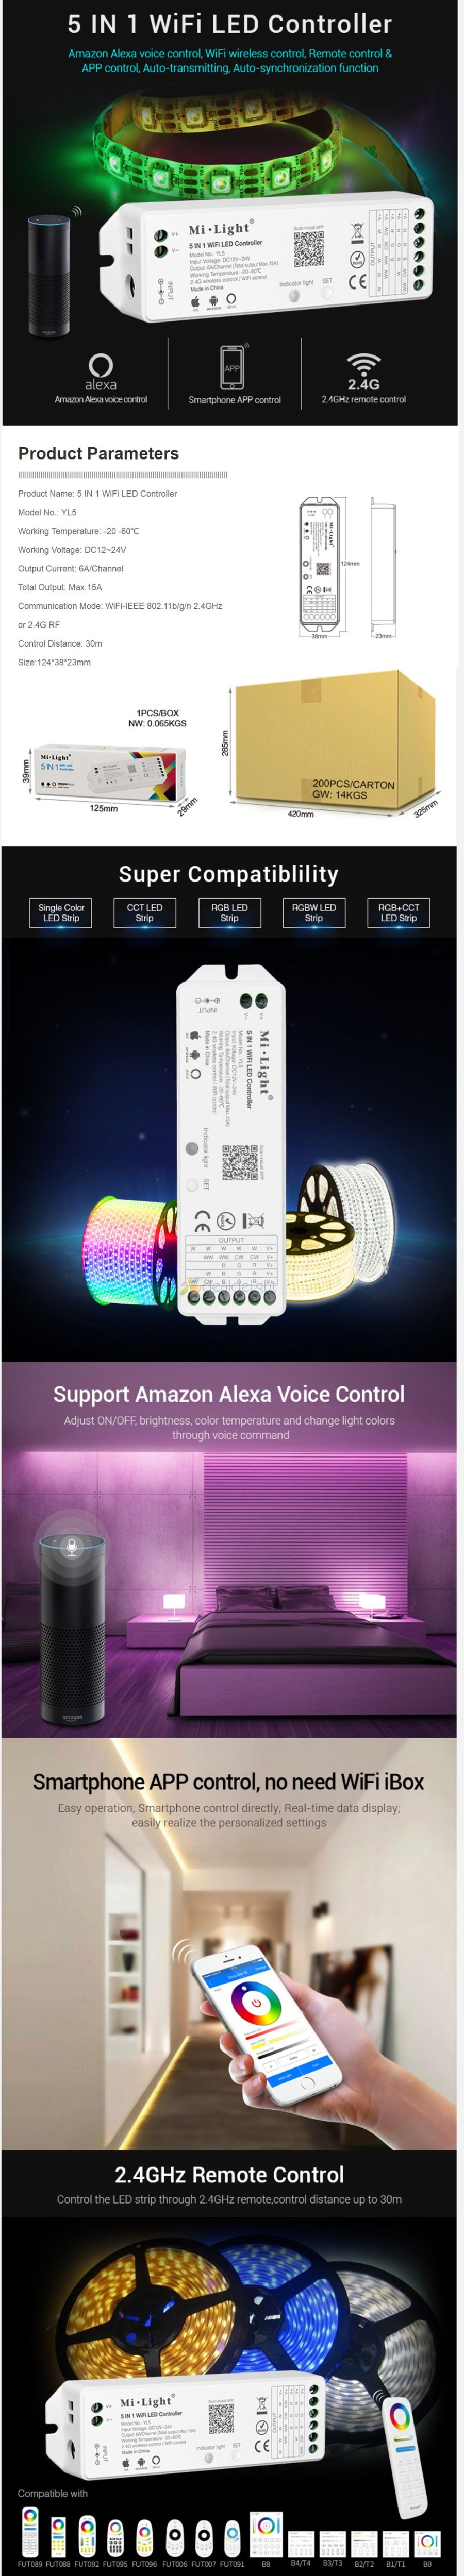 YL5 5 IN 1 WiFi LED Controller  1